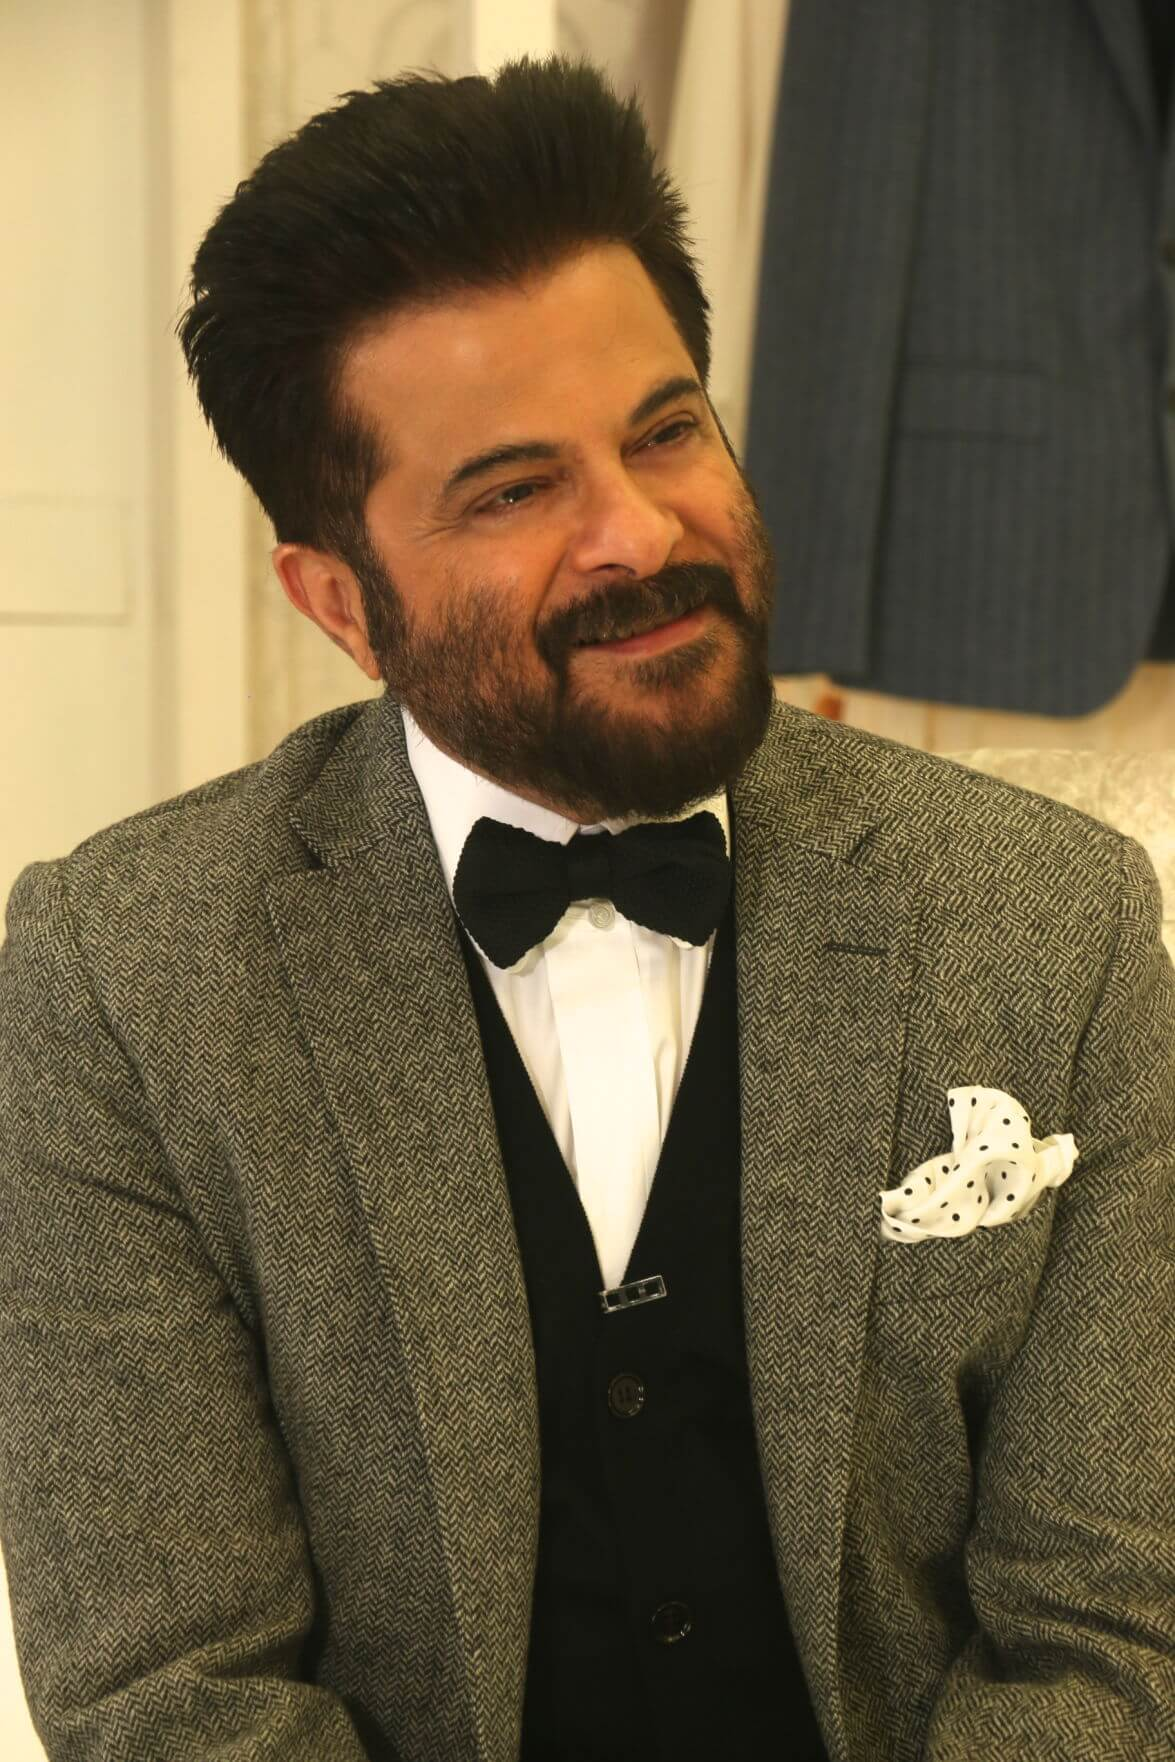 Anil Kapoor Wife, Son, Age, Family, Daughter, Date Of Birth, Net Worth, Children, Biography, Photo, Height, Marriage, Education, Awards, Instagram, Twitter, Wiki, Imdb, Facebook, Website (7)